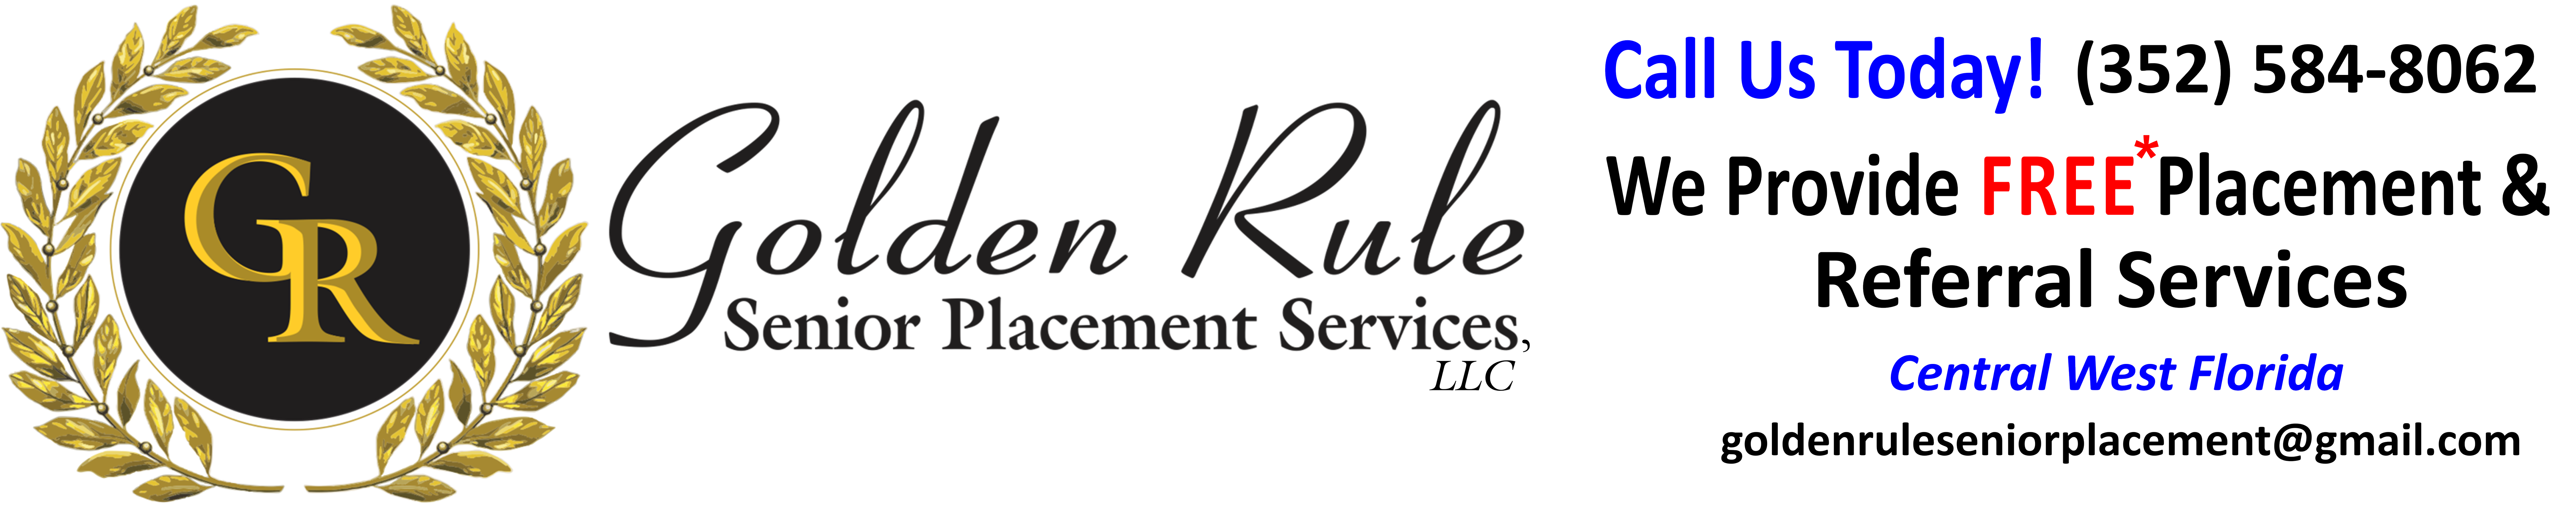 golden-rule-senior-placement-services-banner-llc-bottom